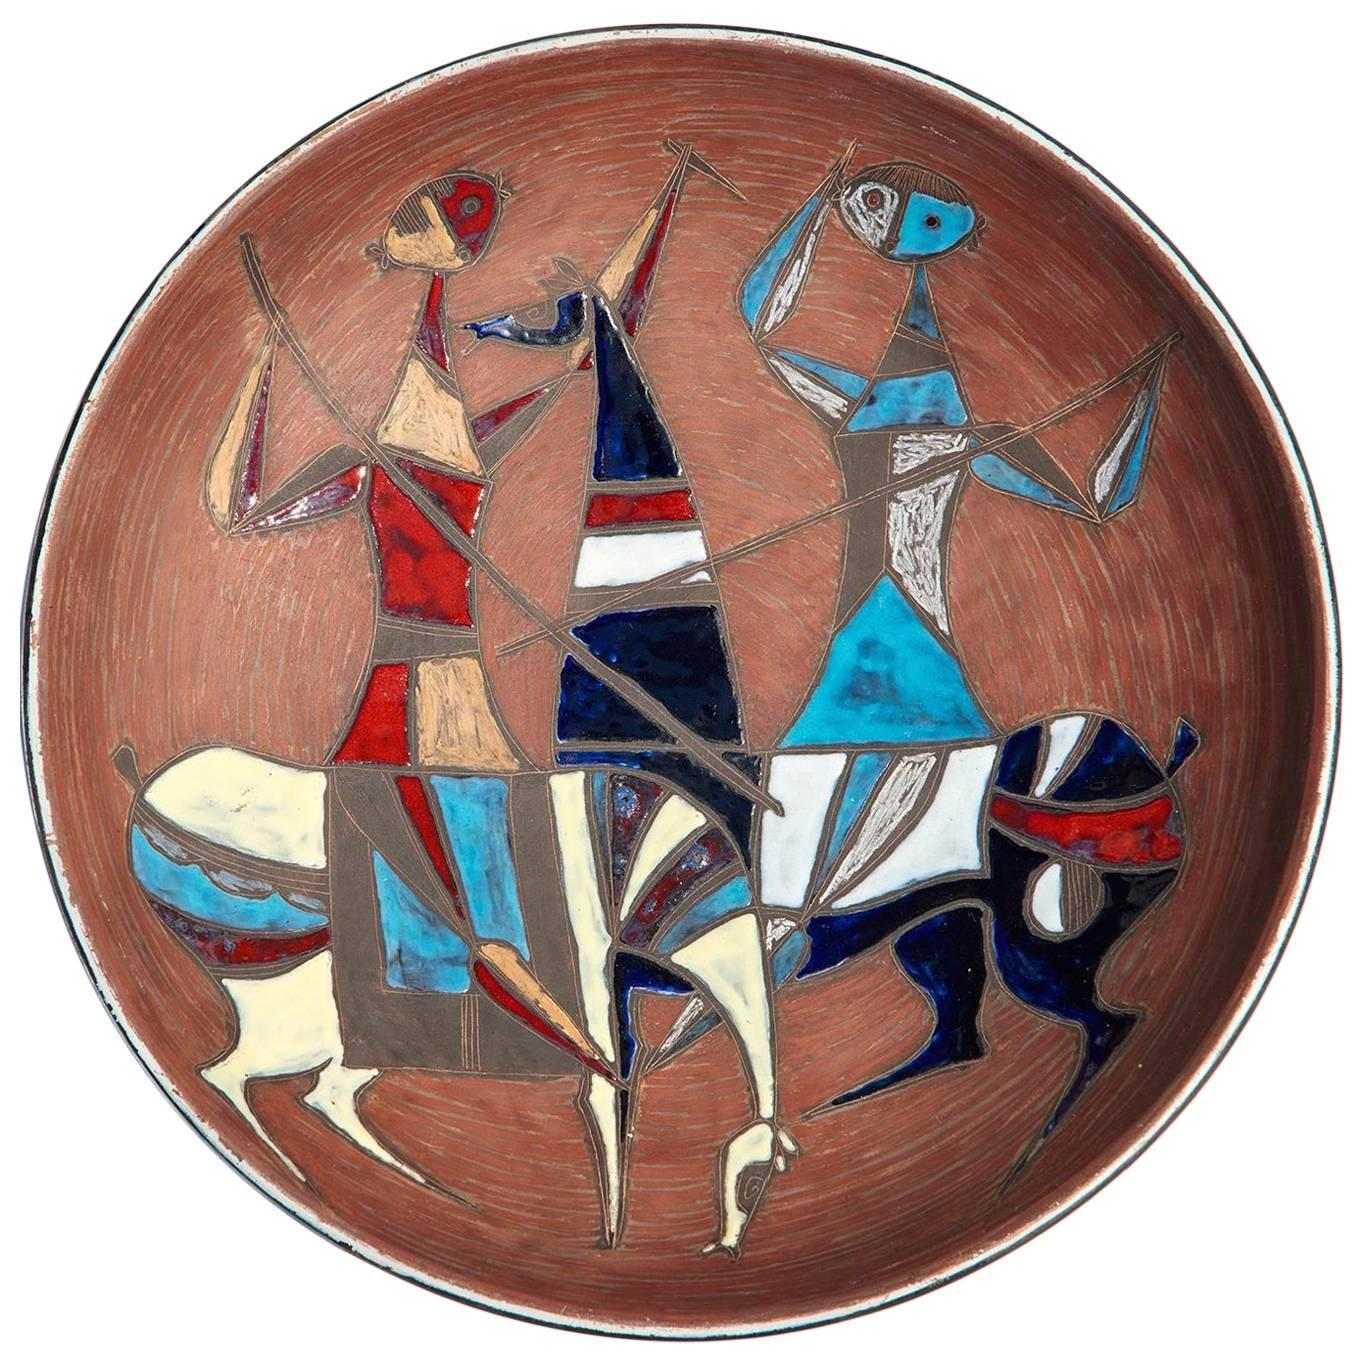 Large Wall-Plaque / Charger by Marcello Fantoni